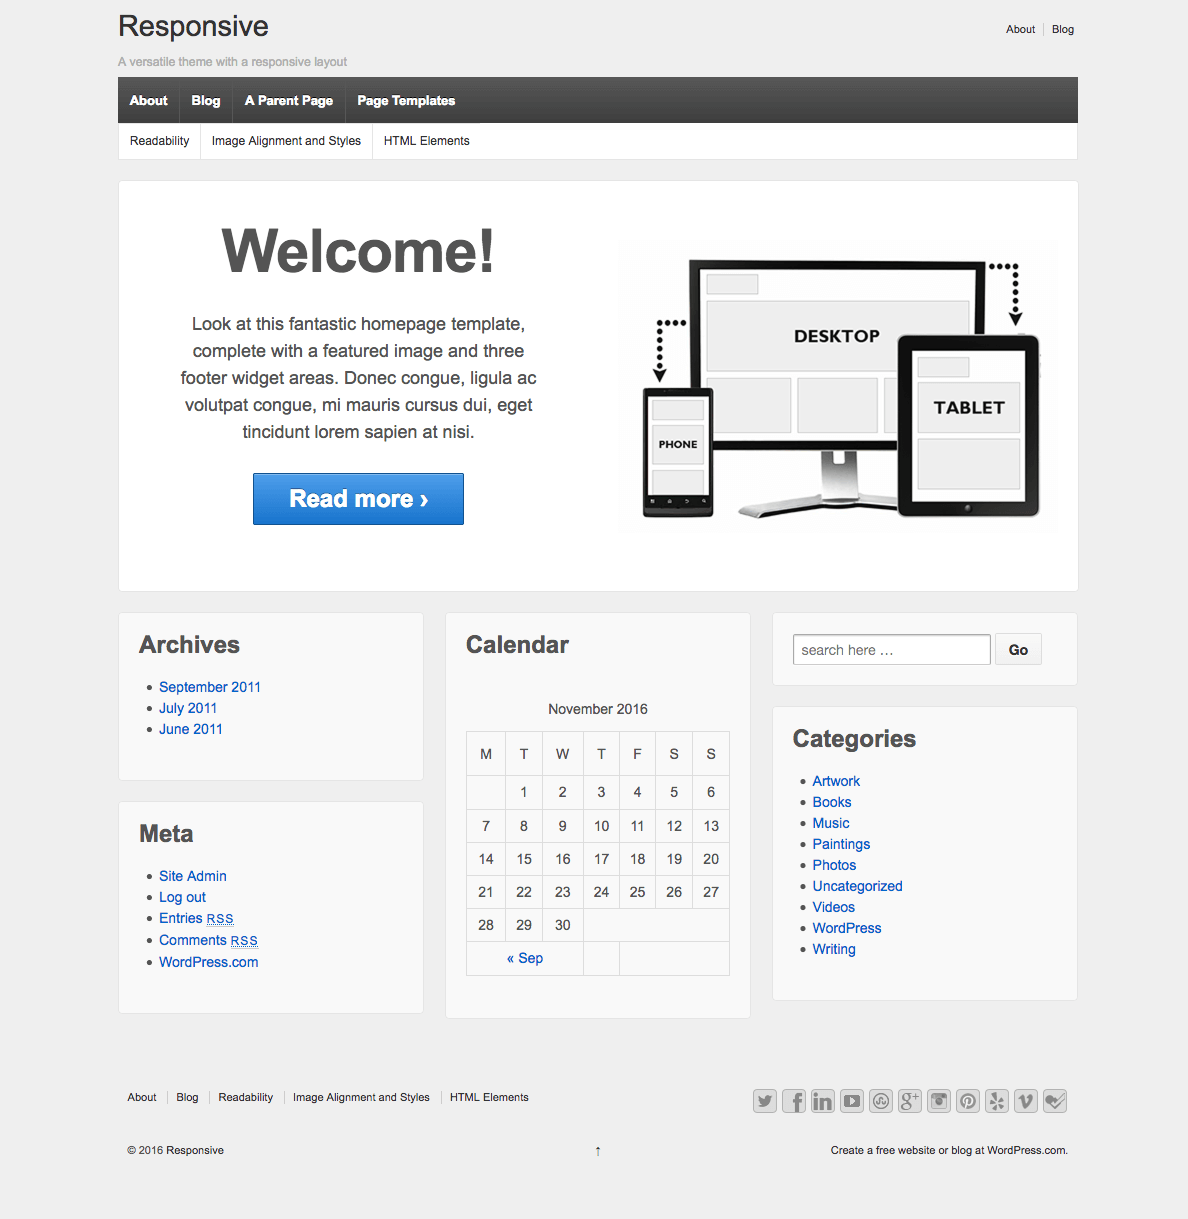 Screenshot of the Responsive theme